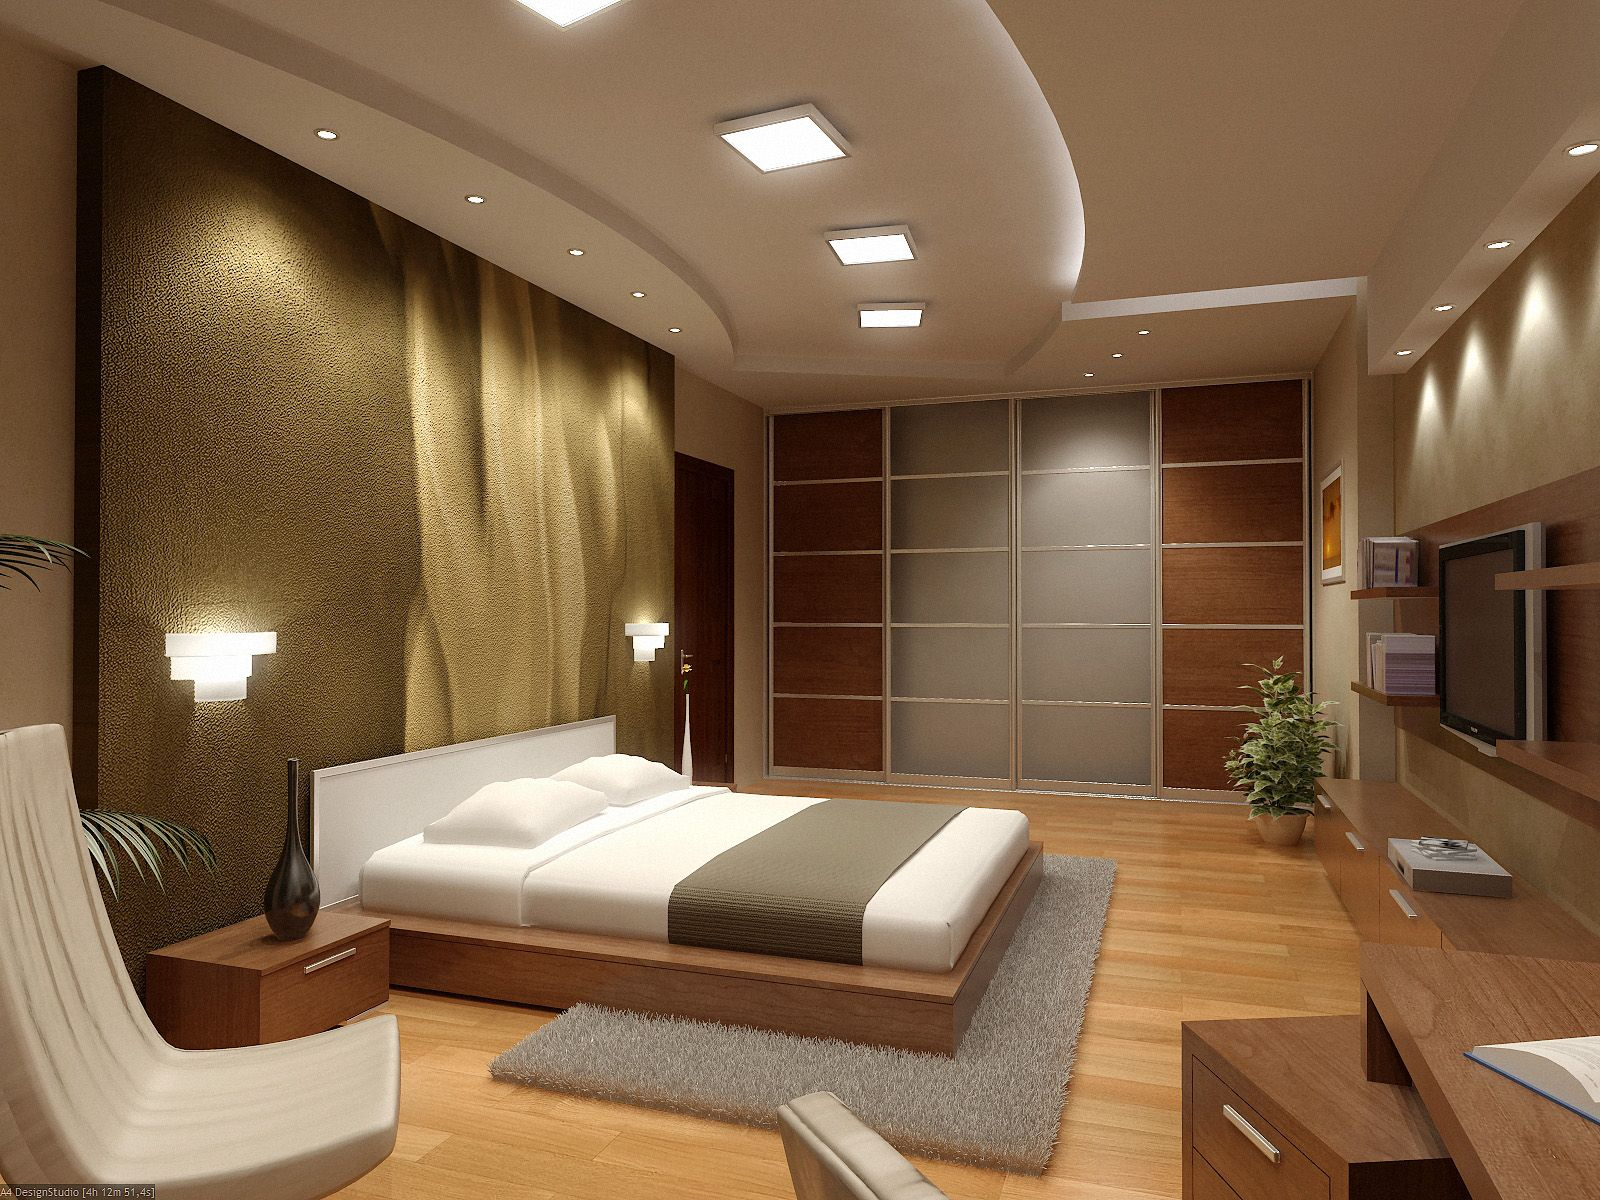 New home designs latest modern homes luxury interior for Pics of luxury bedrooms